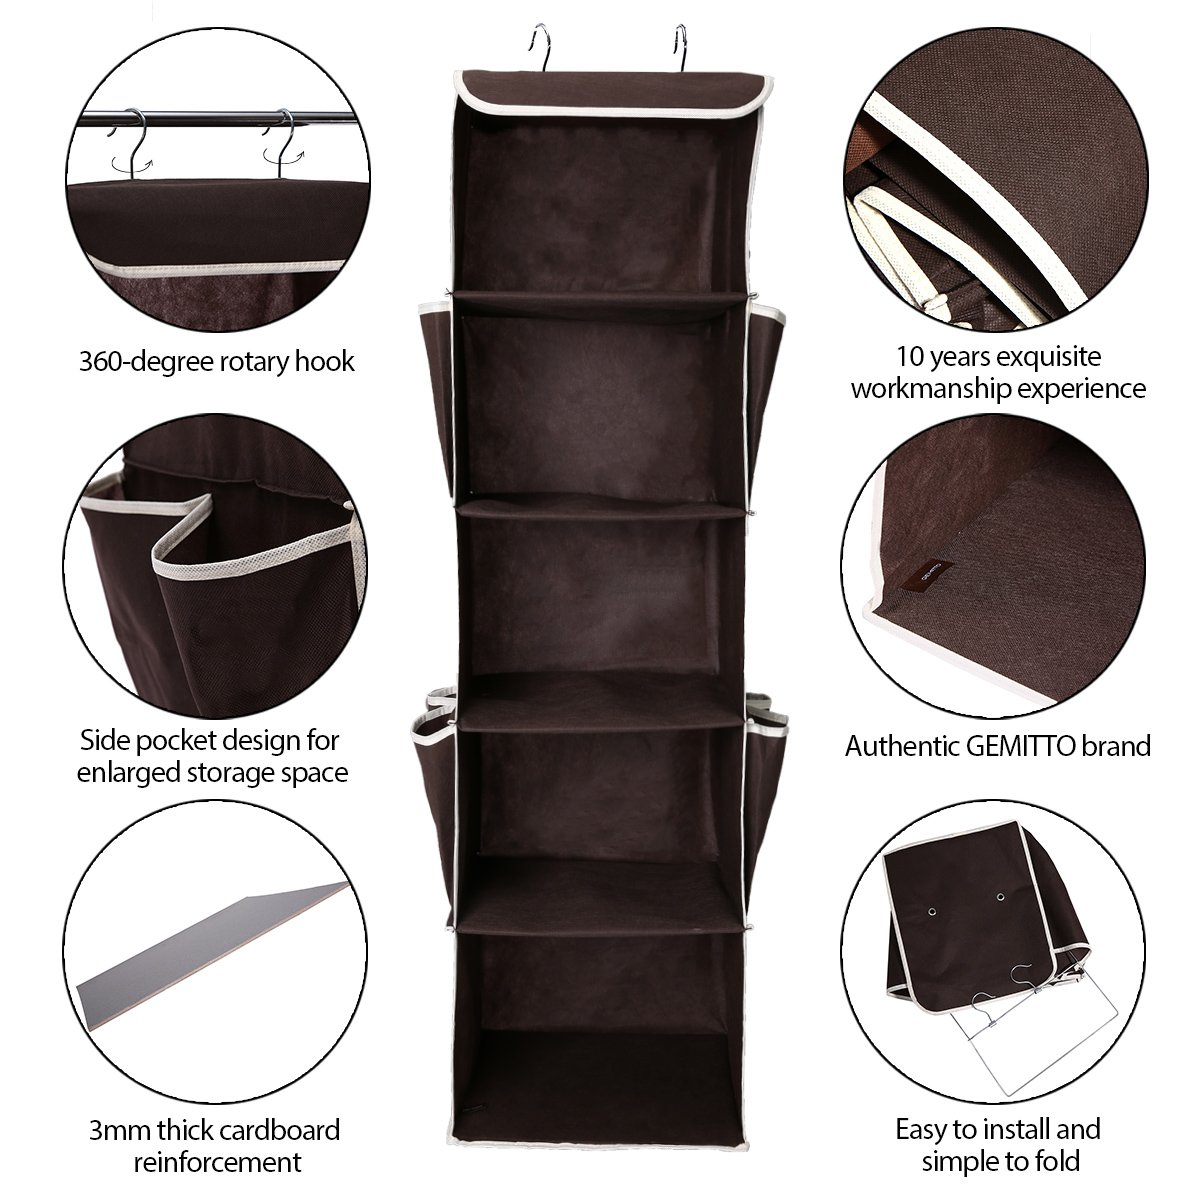 GEMITTO Heavy Duty 5 Shelves Hanging Wardrobe Closet Organizer Clothes Storage Box Accessory Shelves with Side Pockets Brown